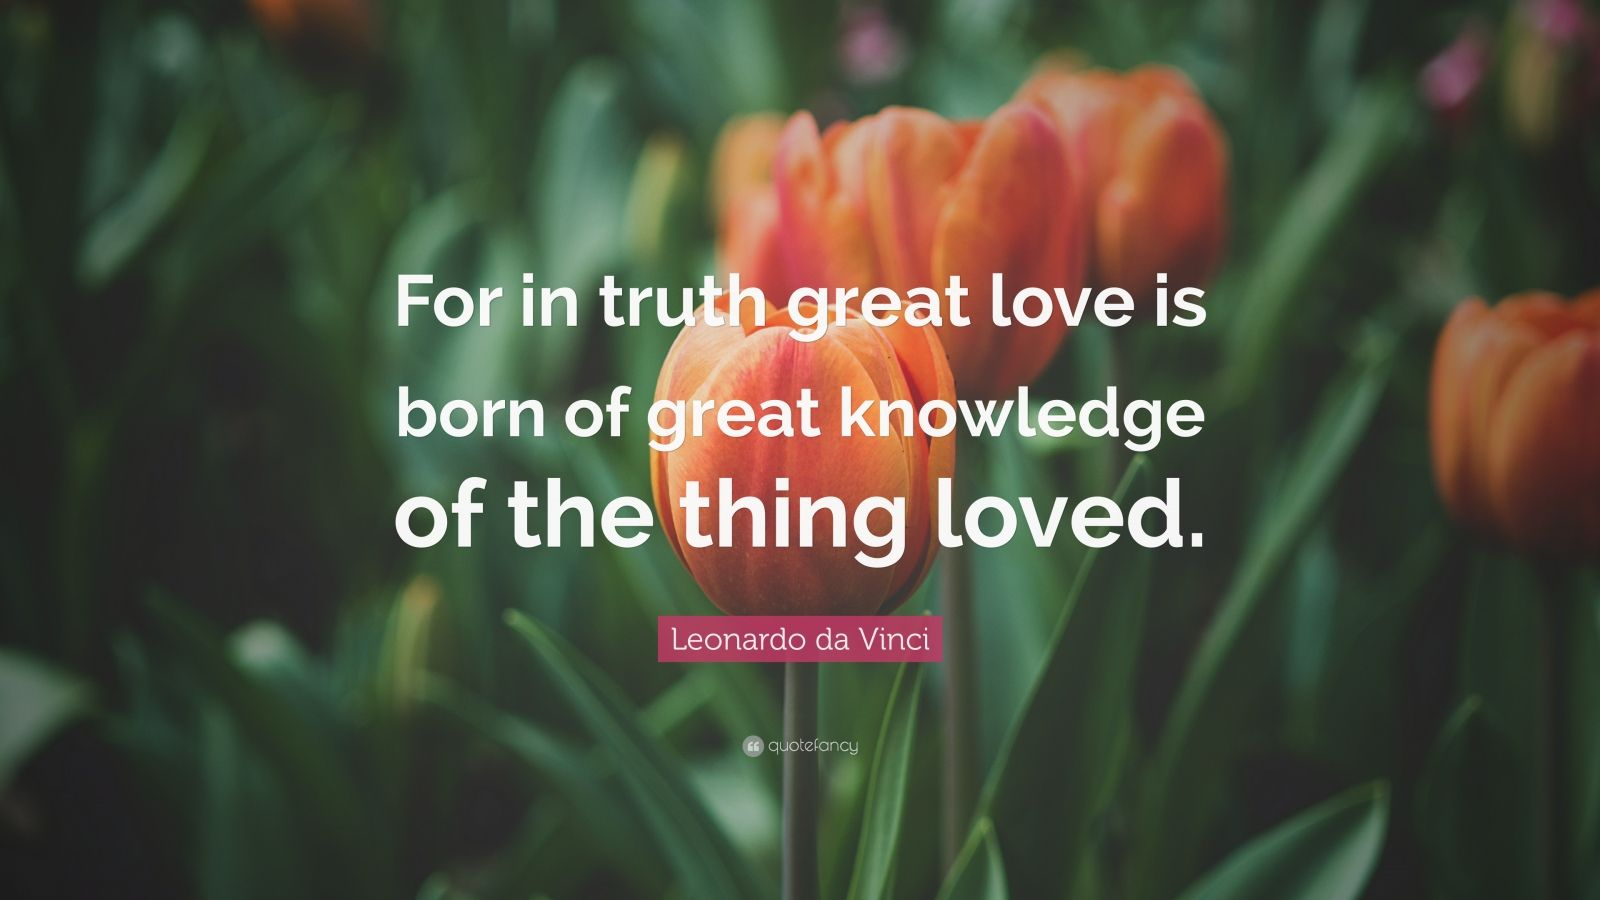 """Leonardo da Vinci Quote: """"For in truth great love is born of great knowledge of the thing loved."""""""